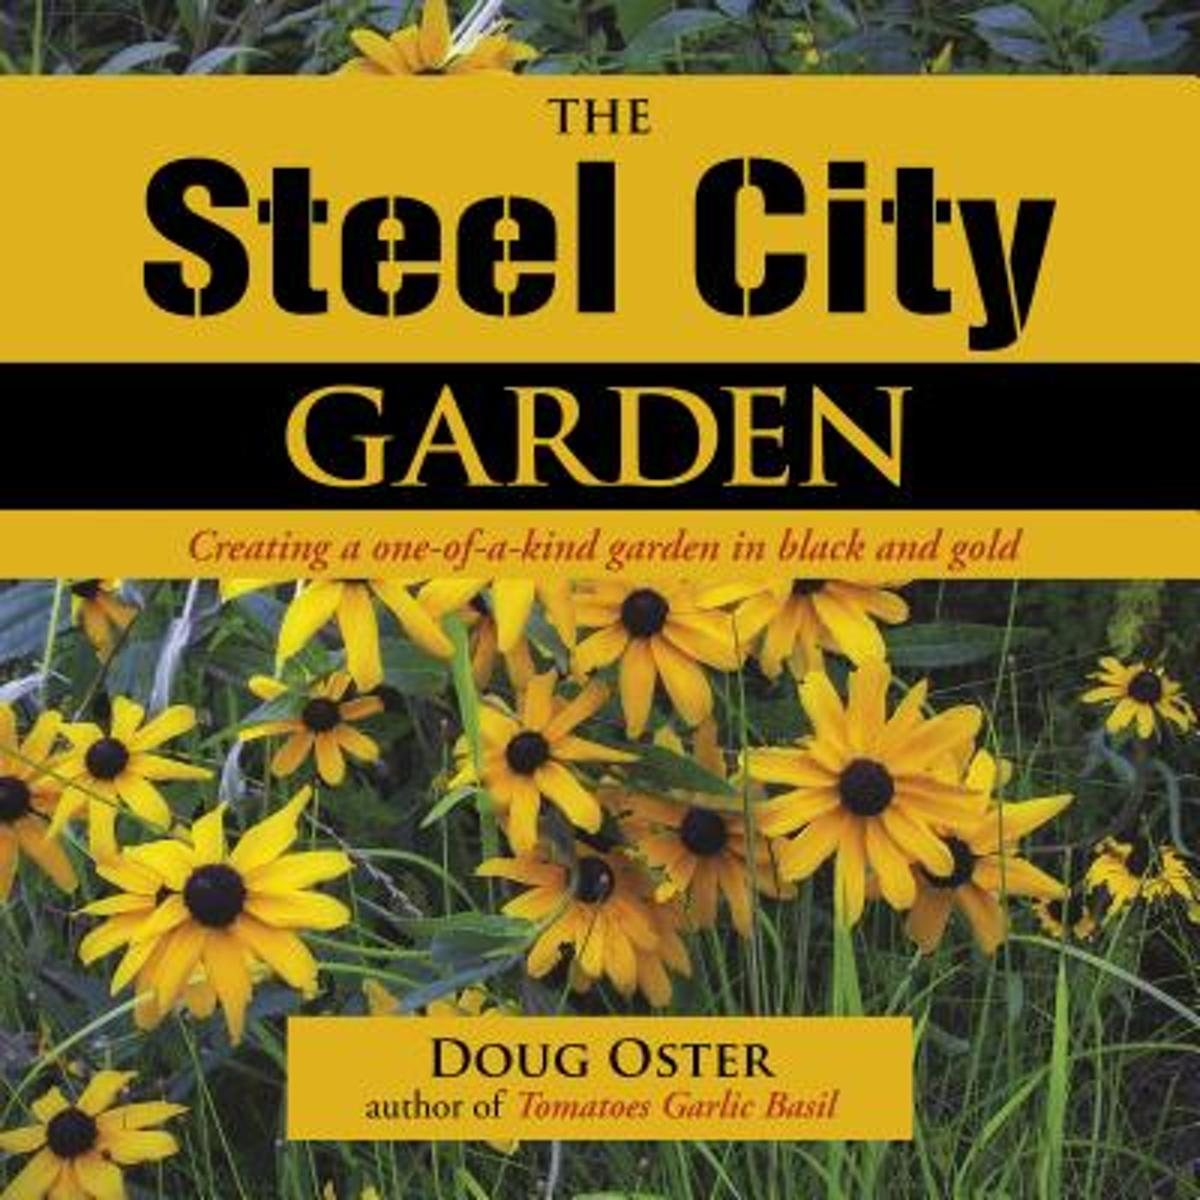 The Steel City Garden